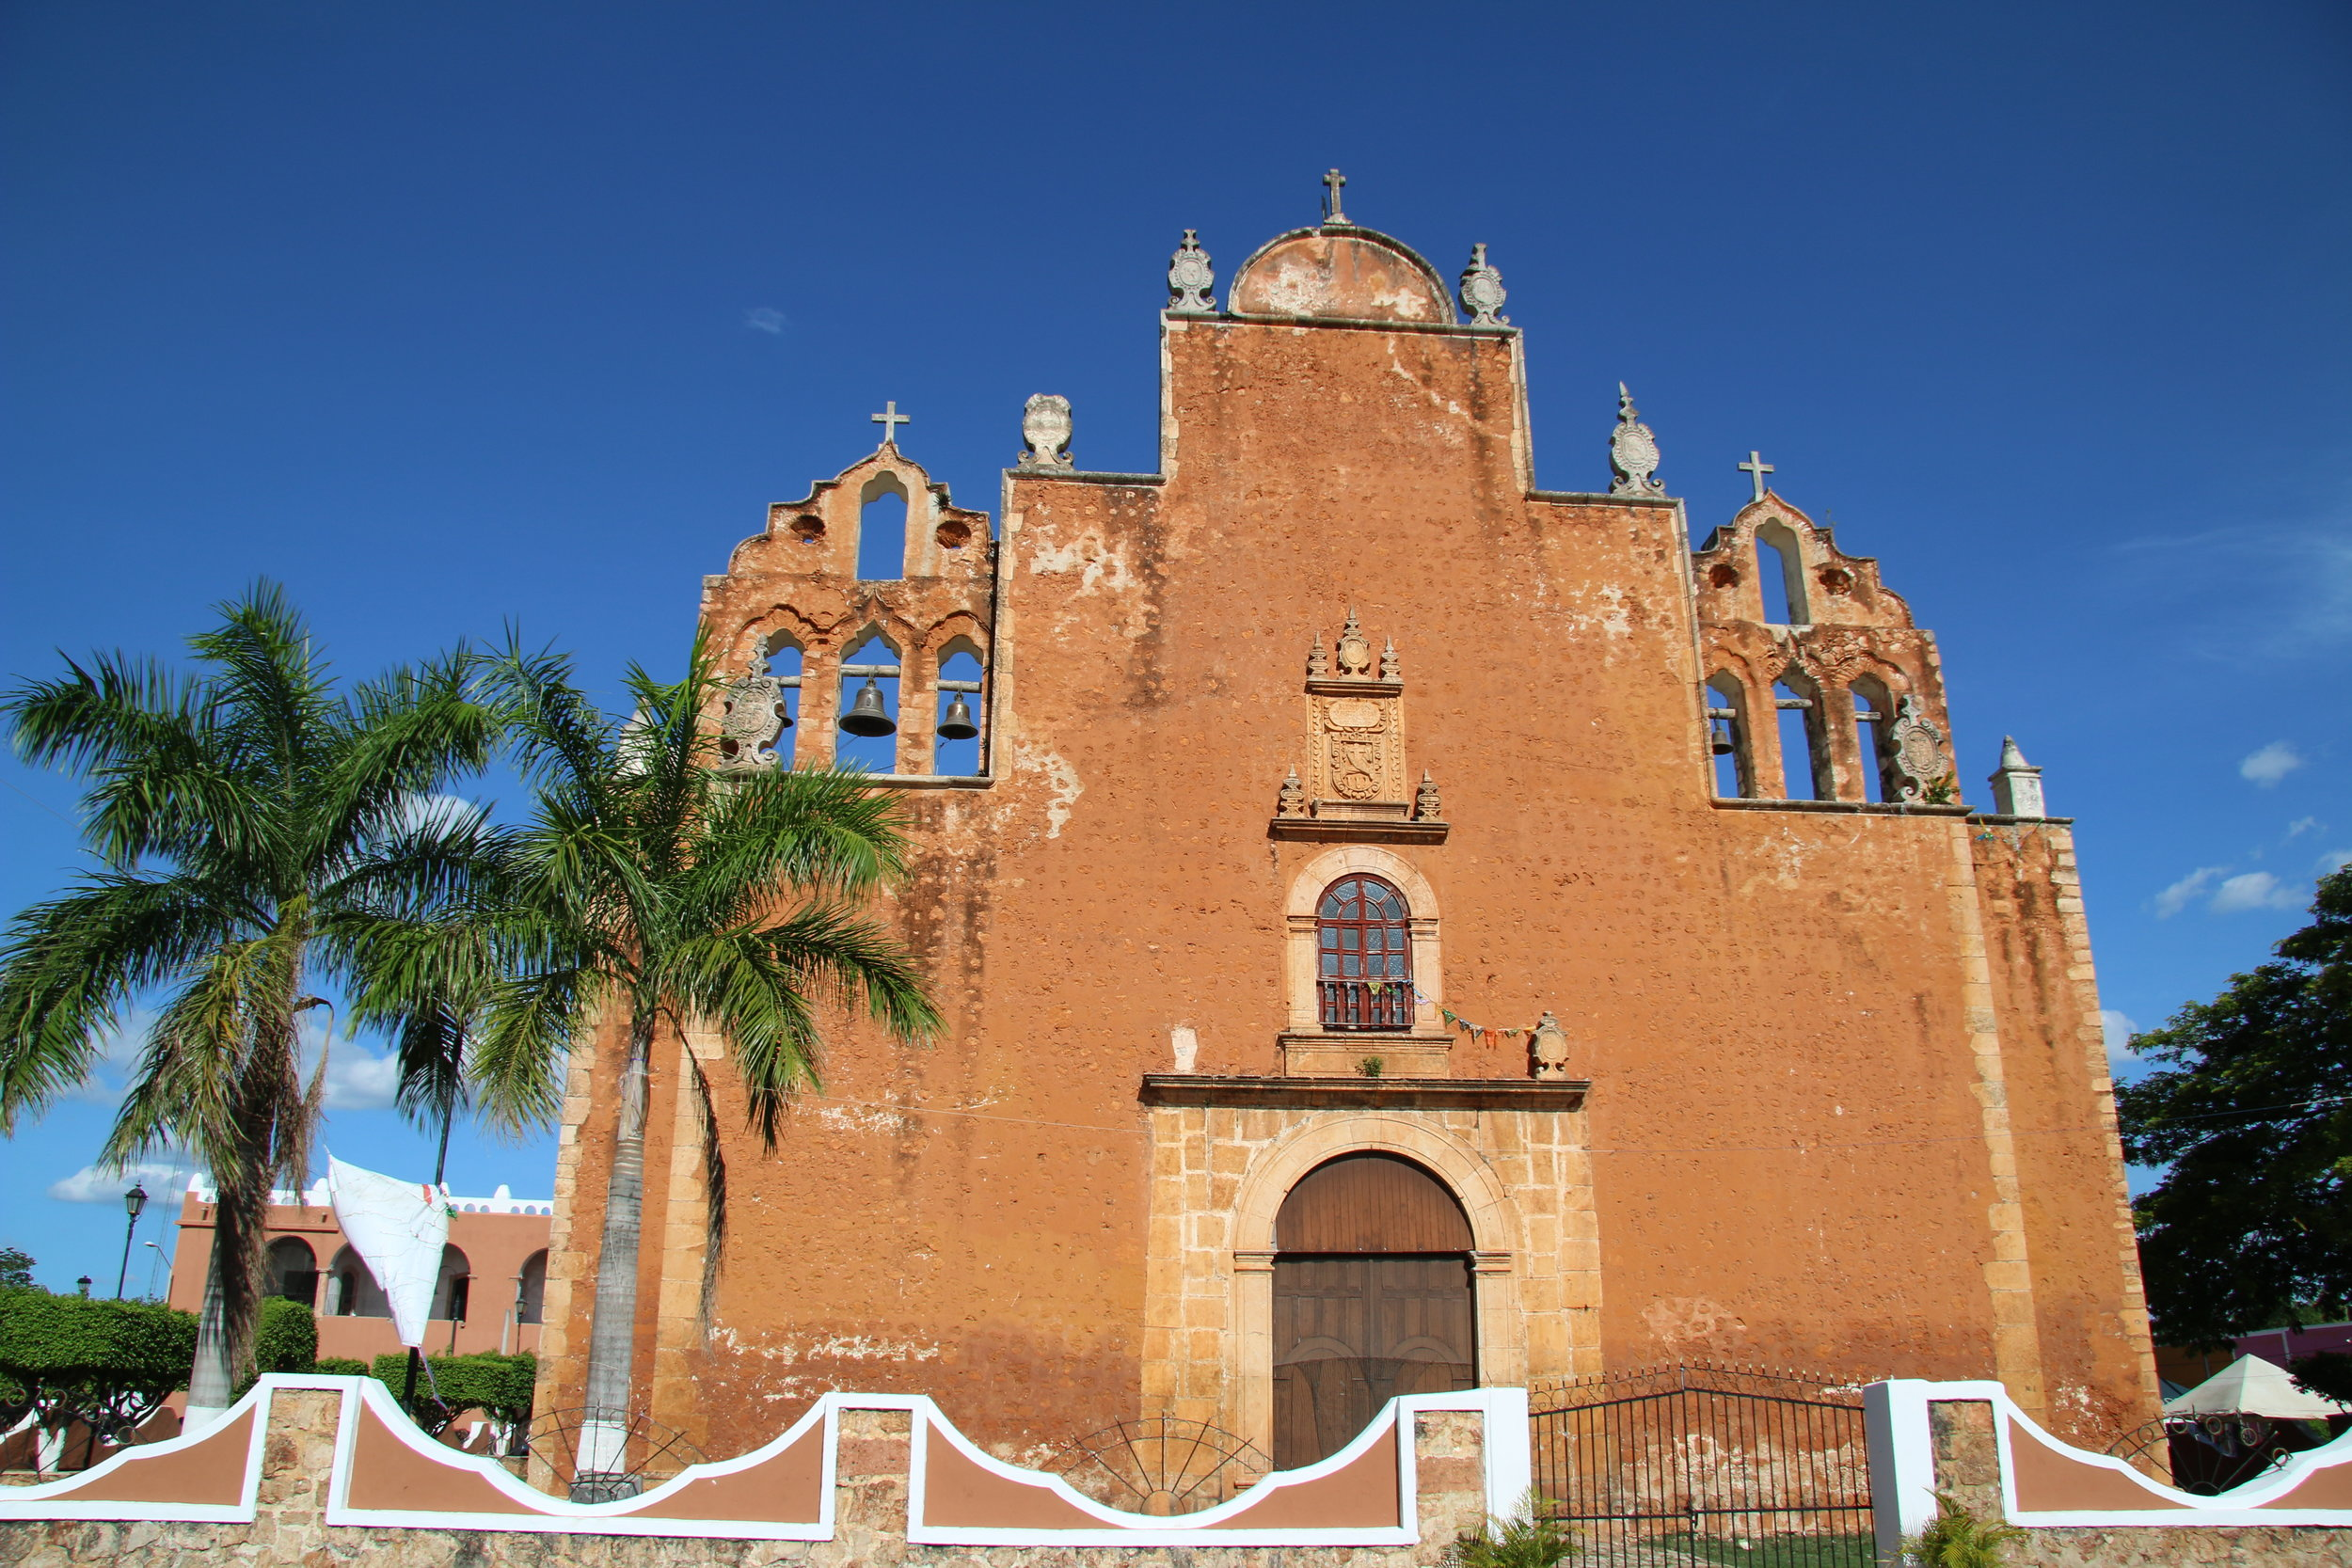 Can't stop taking photos of this church against the deep blue Yucatan sky 2/3